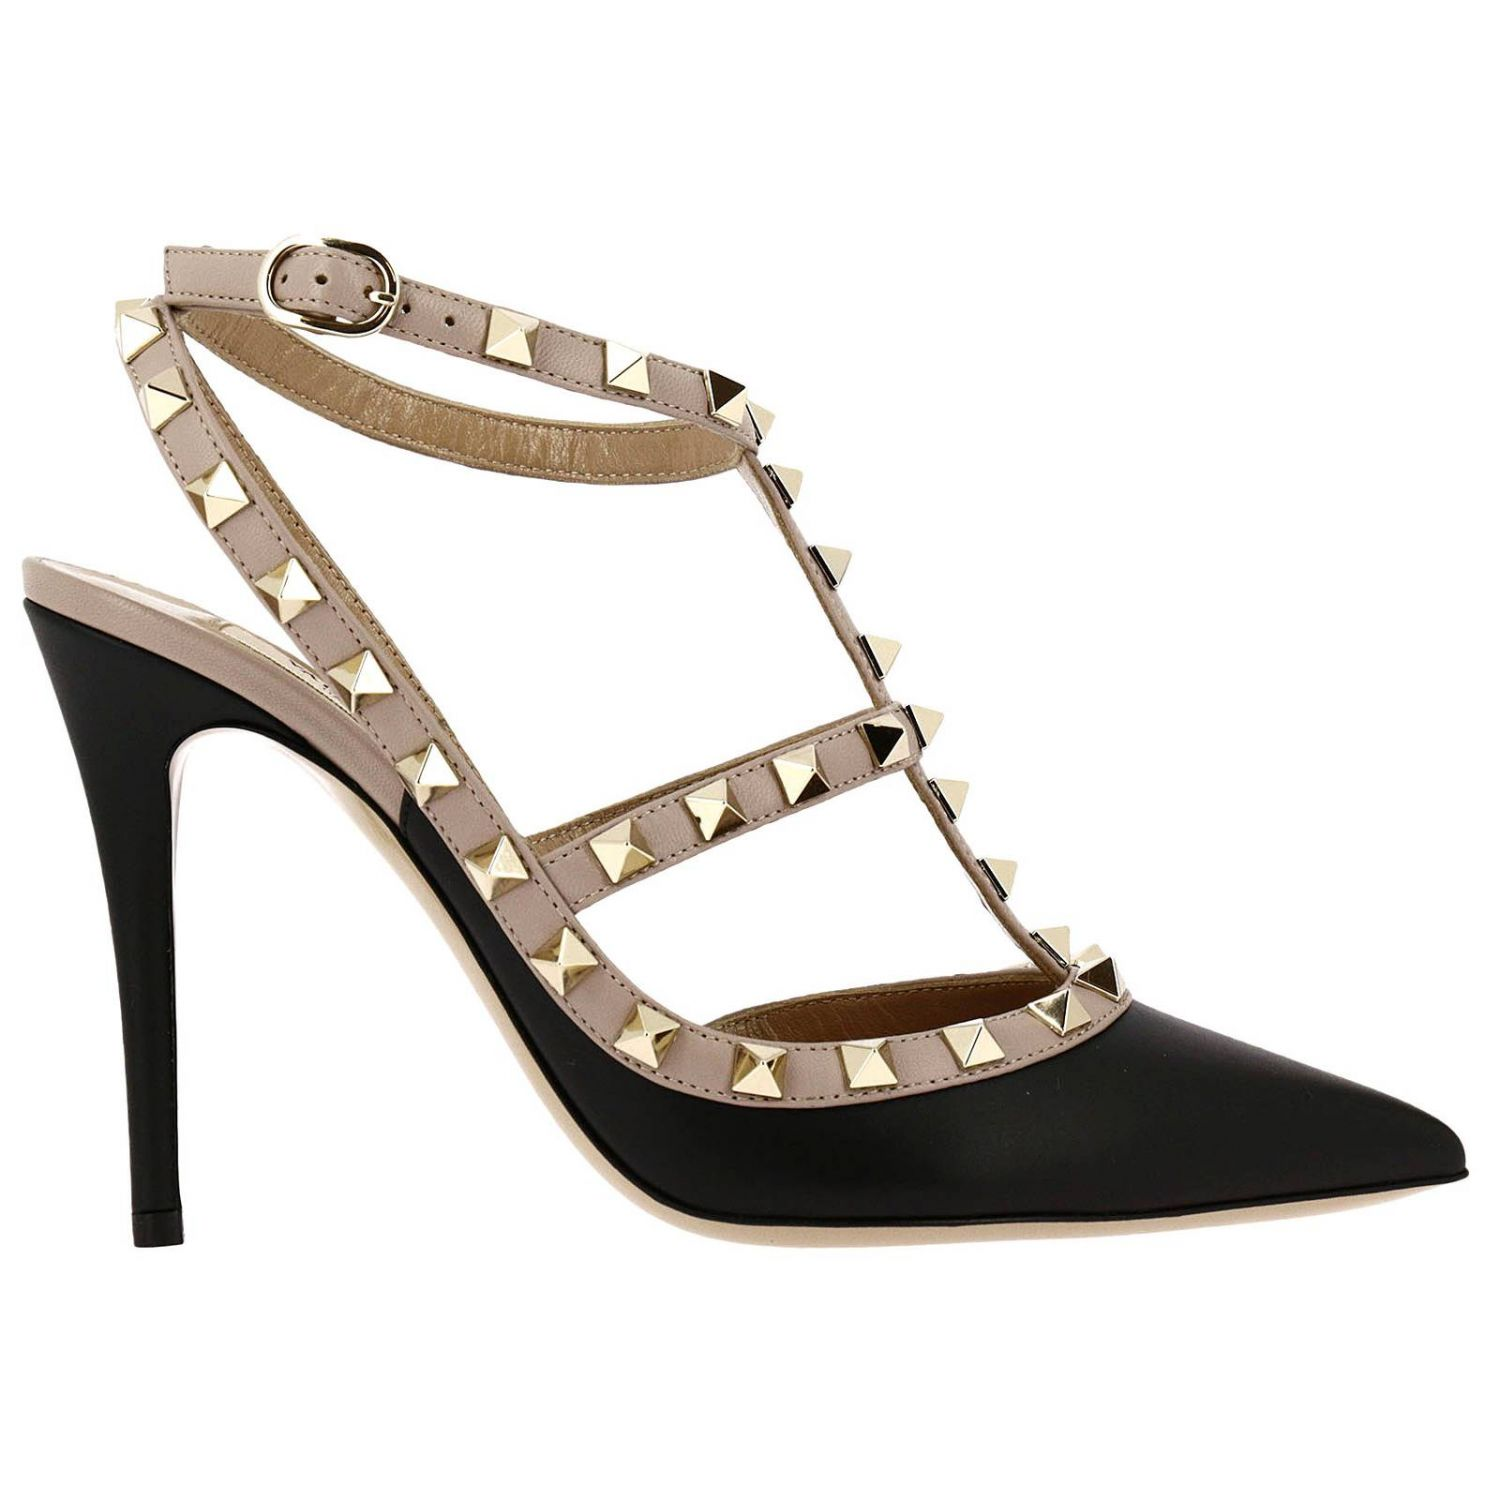 Pumps Valentino Rockstud Pumps Ankle Strap In Real Leather With Bicolor Pattern And Micro Studs 8331618